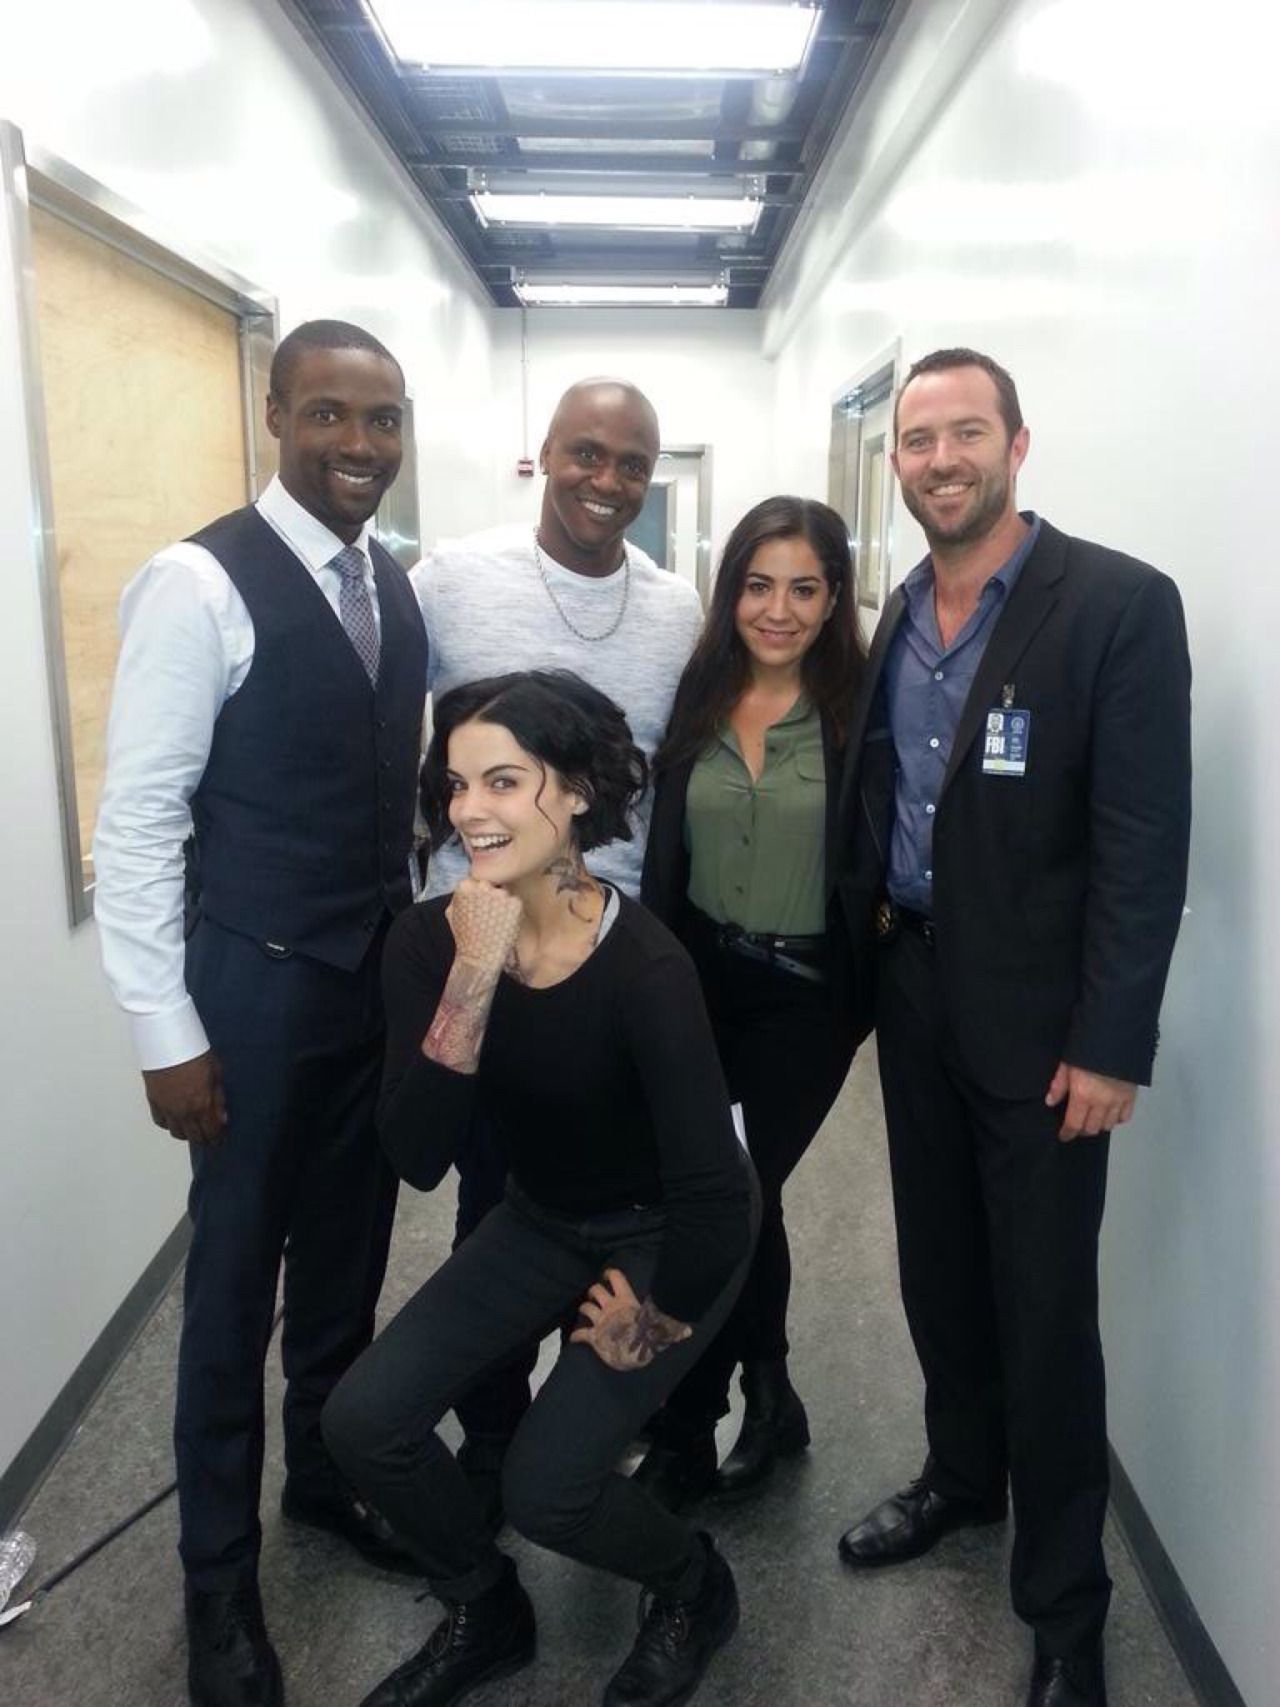 BTS pic from 1x08.